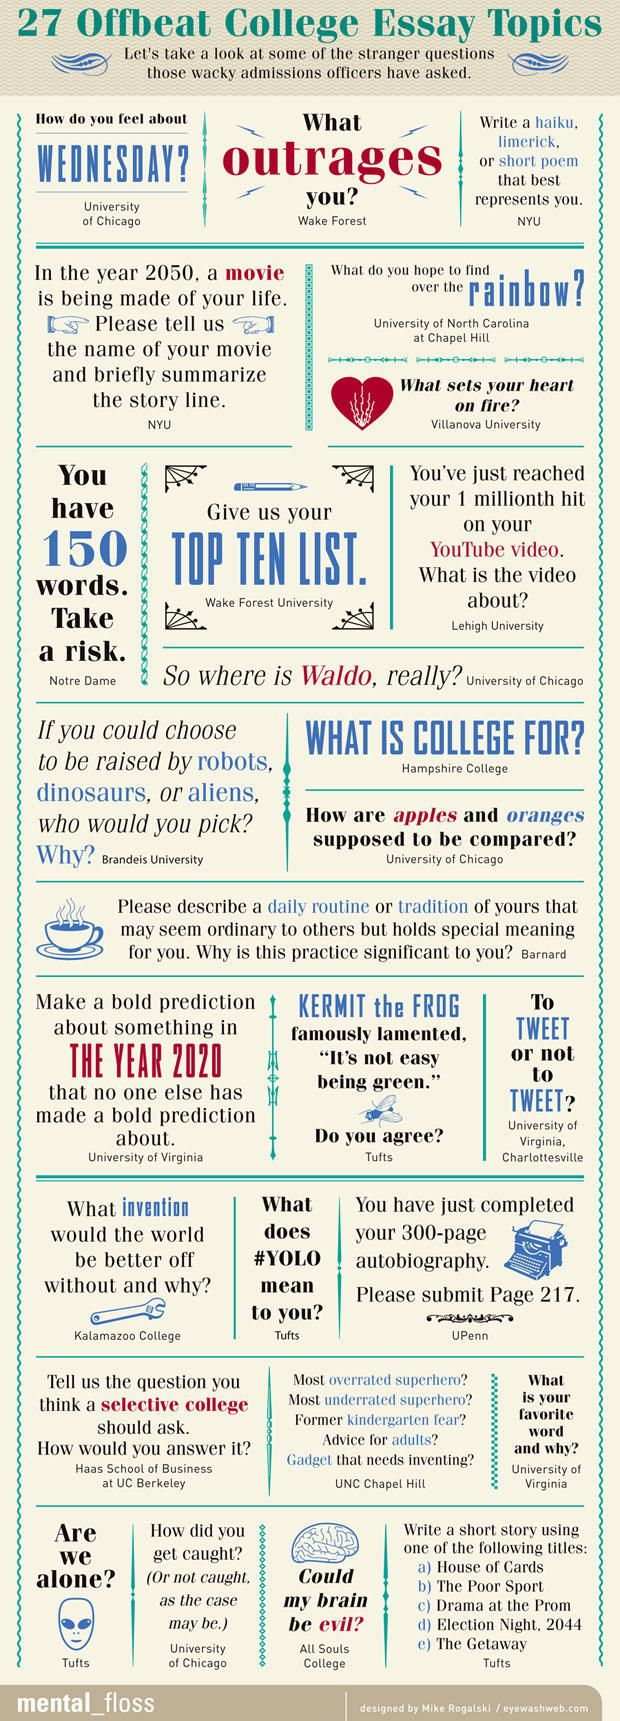 27 Offbeat College Essay Topics | Mental Floss